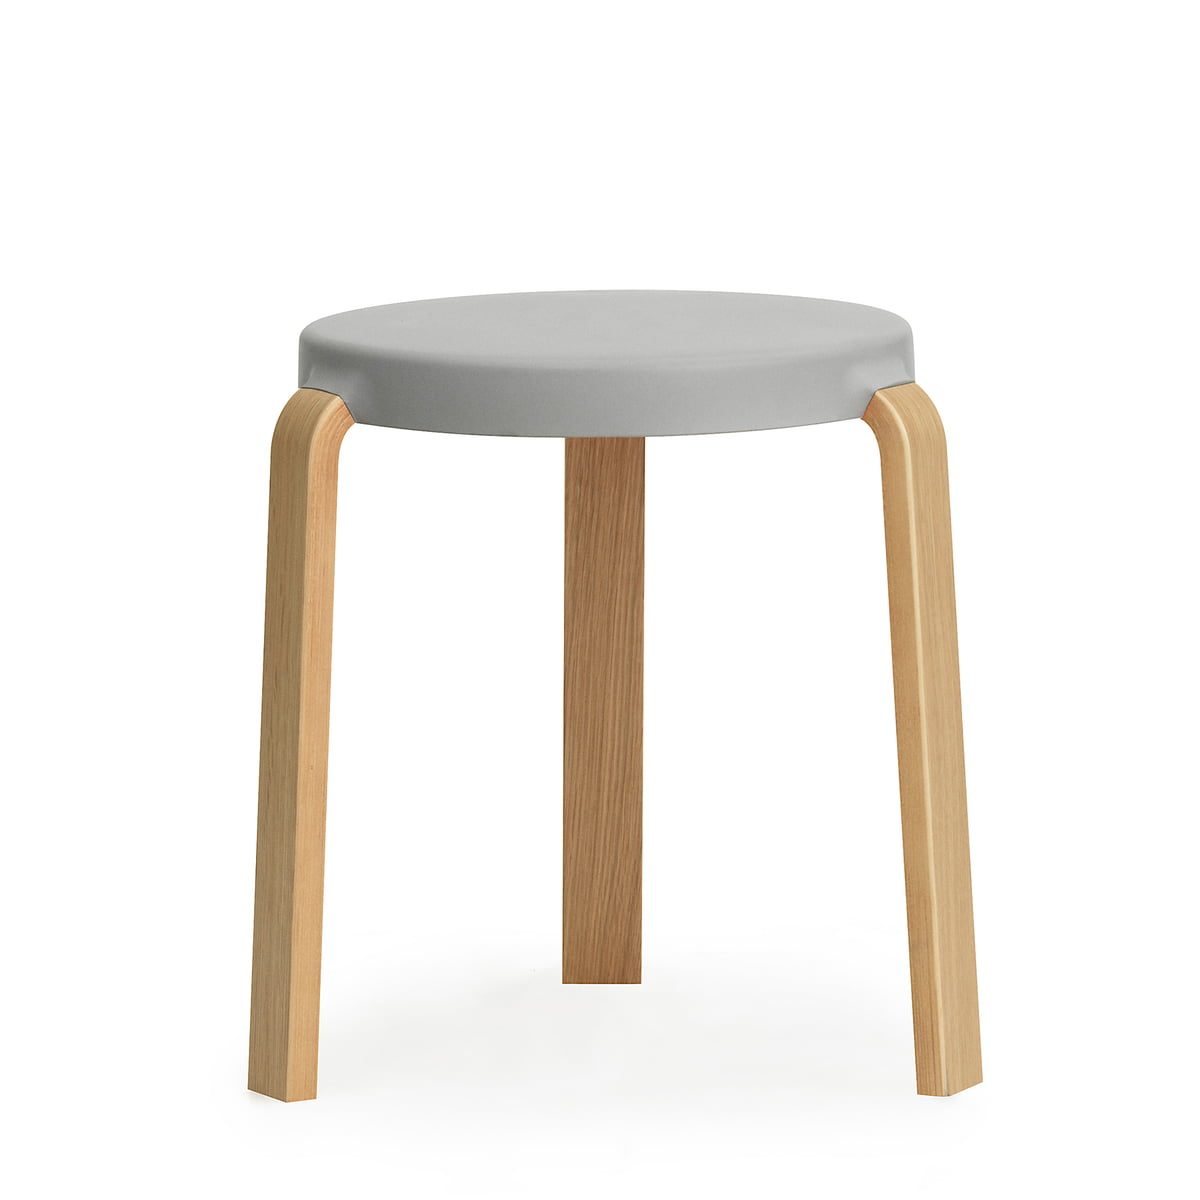 Hocker grau gallery of hover zum zoomen with hocker grau for Ohrensessel mit hocker grau